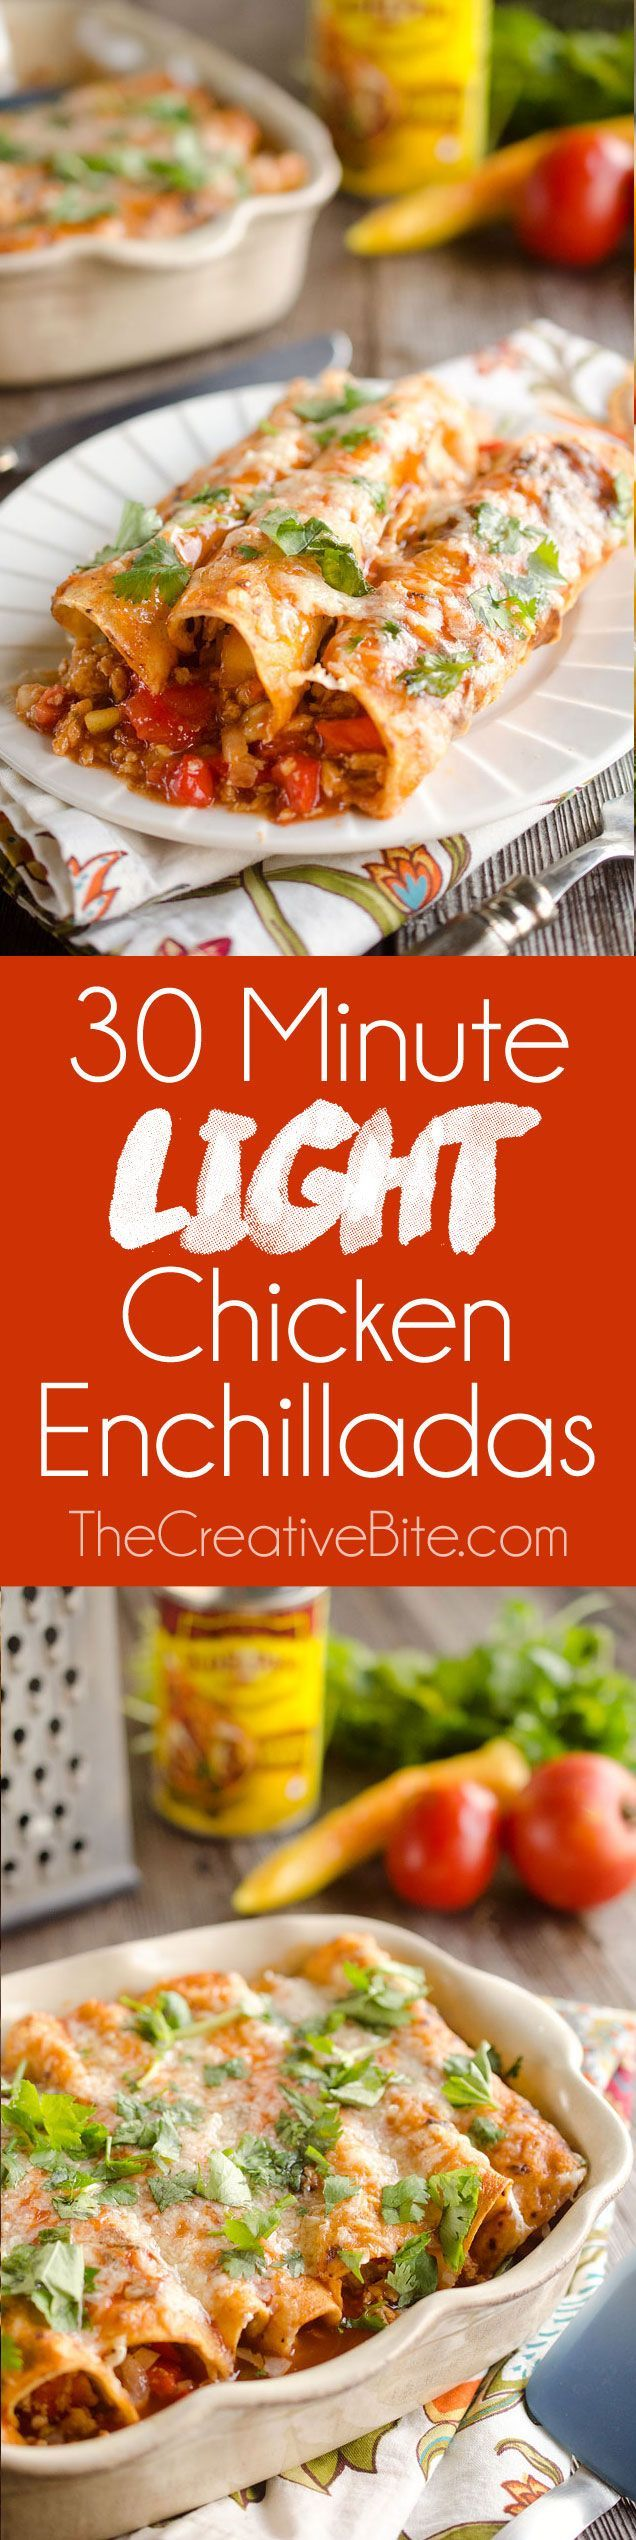 30 Minute Light Chicken Enchiladas are full of crumbled chicken & vegetables and a spicy enchilada sauce for an easy and healthy weeknight dinner! #Healthy #Chicken #Enchiladas